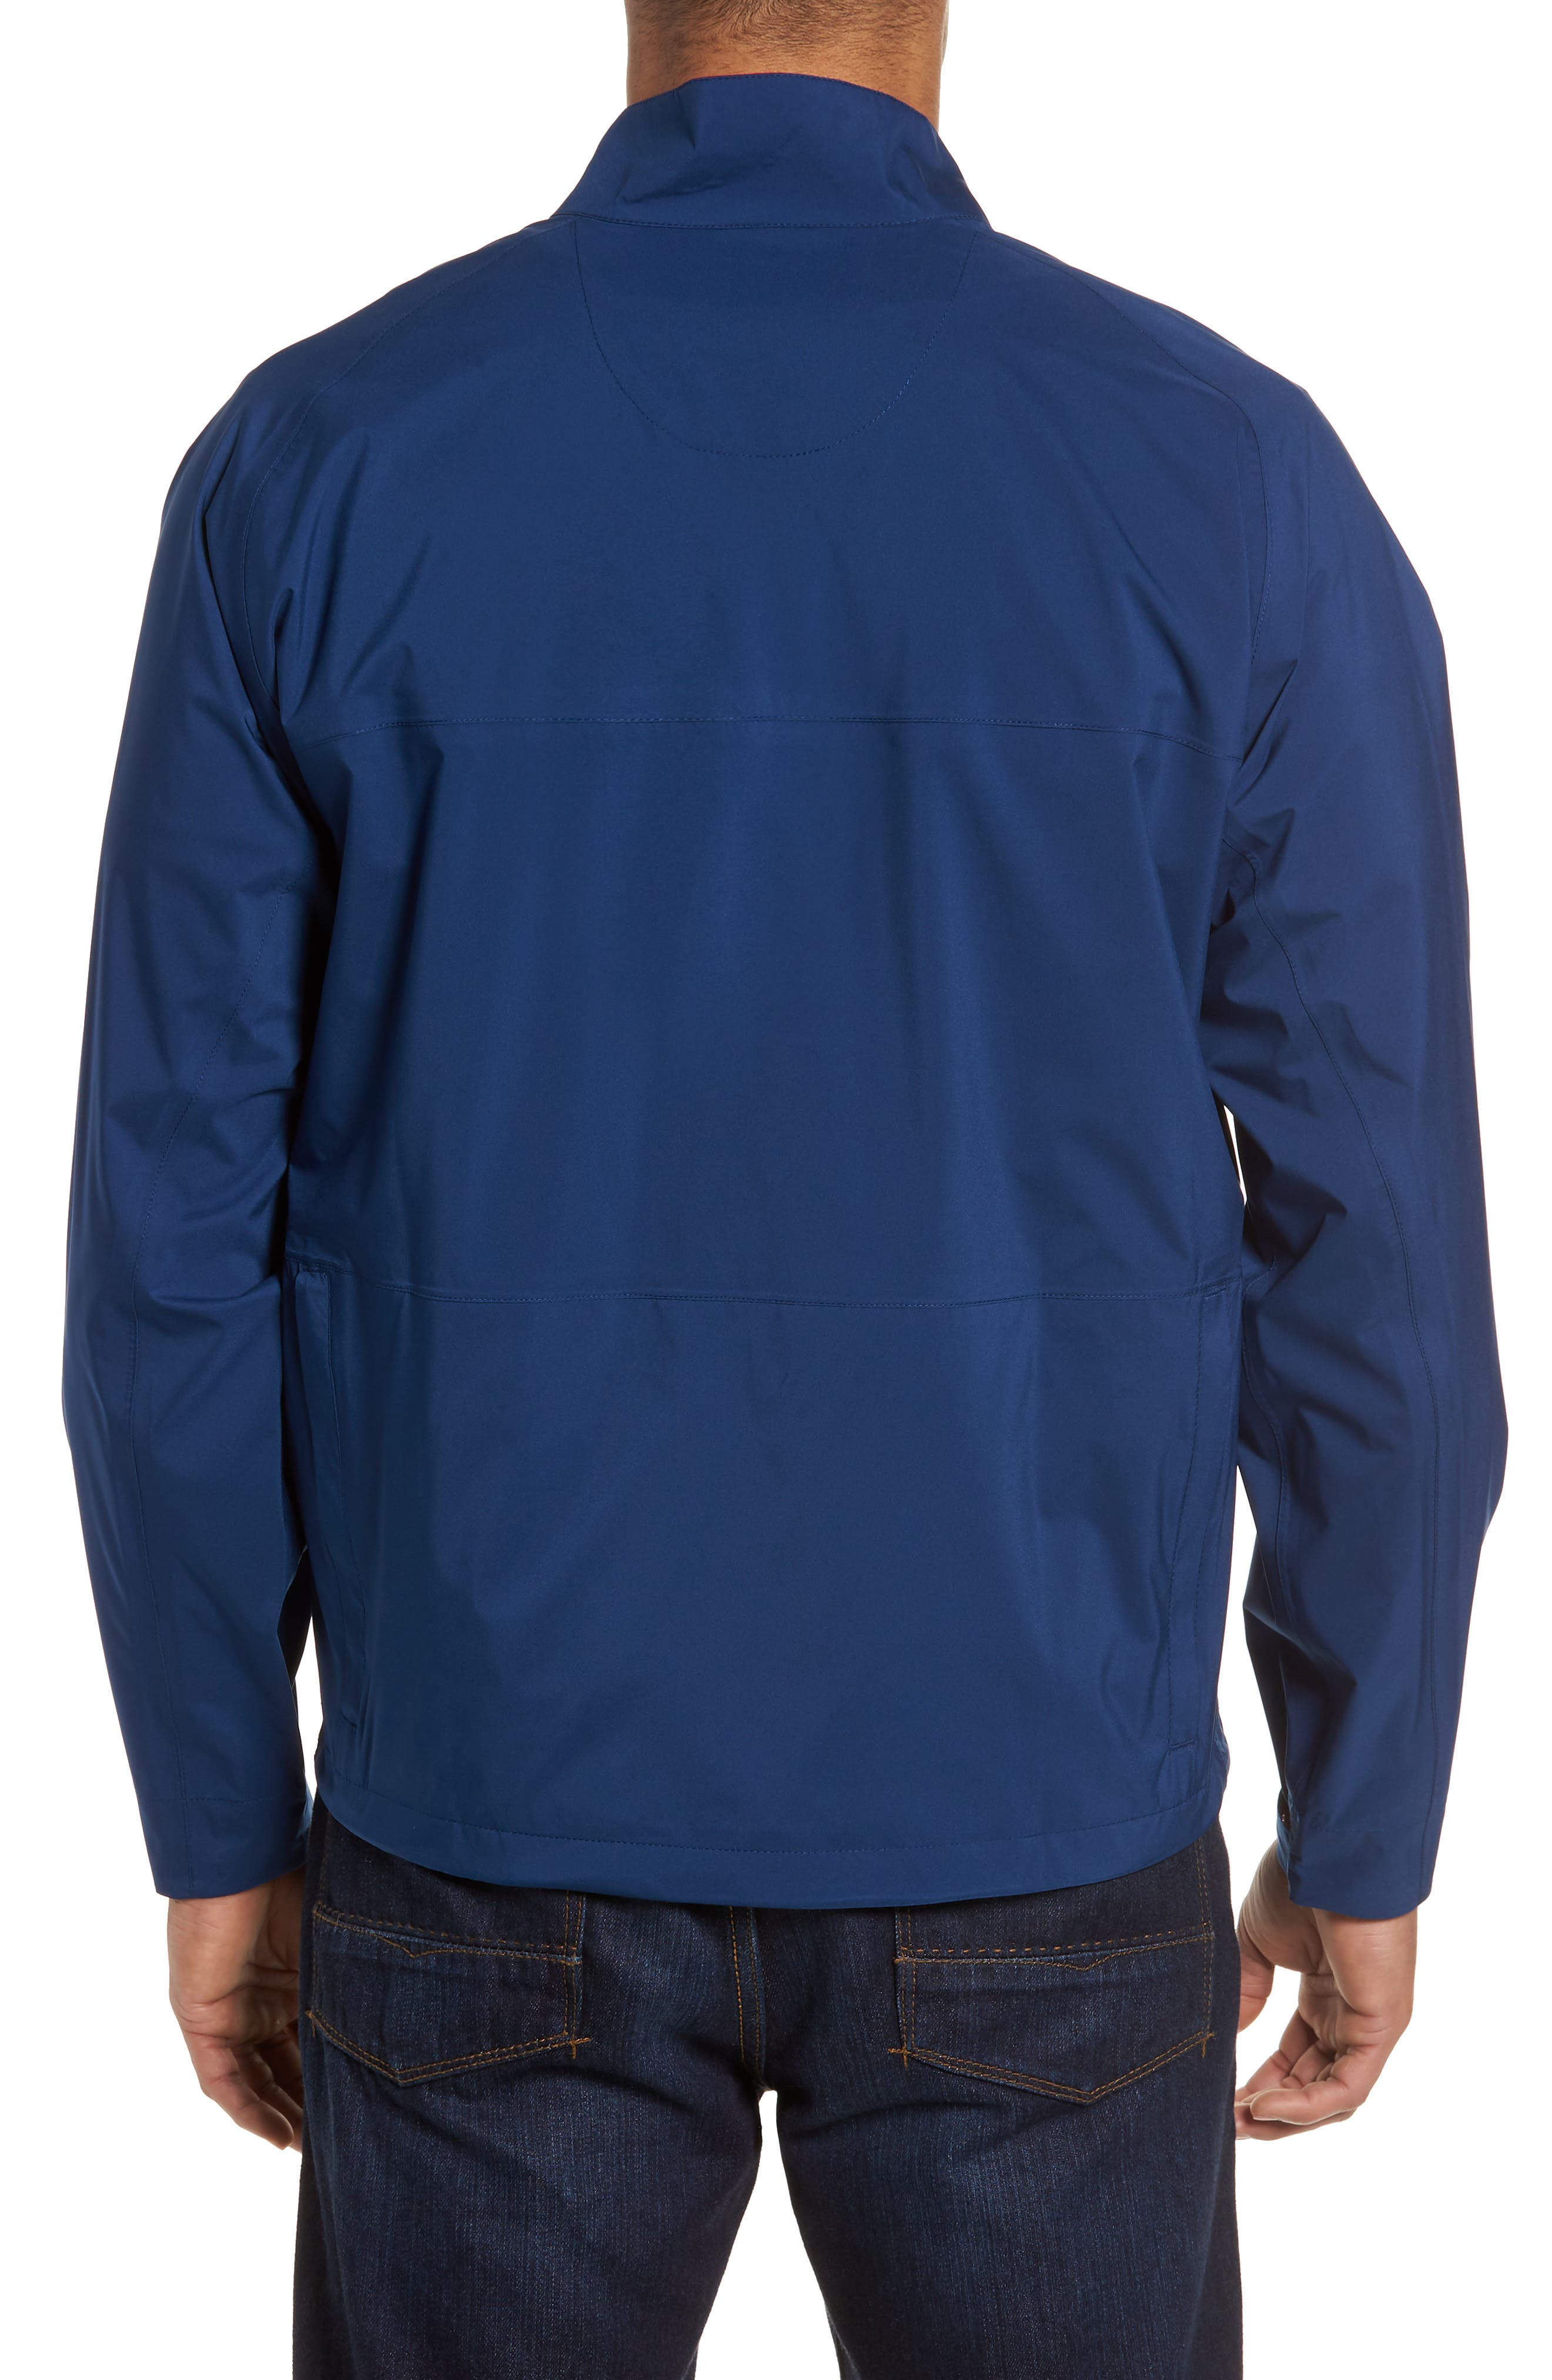 Regular Fit Half Zip Performance Pullover,                             Alternate thumbnail 2, color,                             411